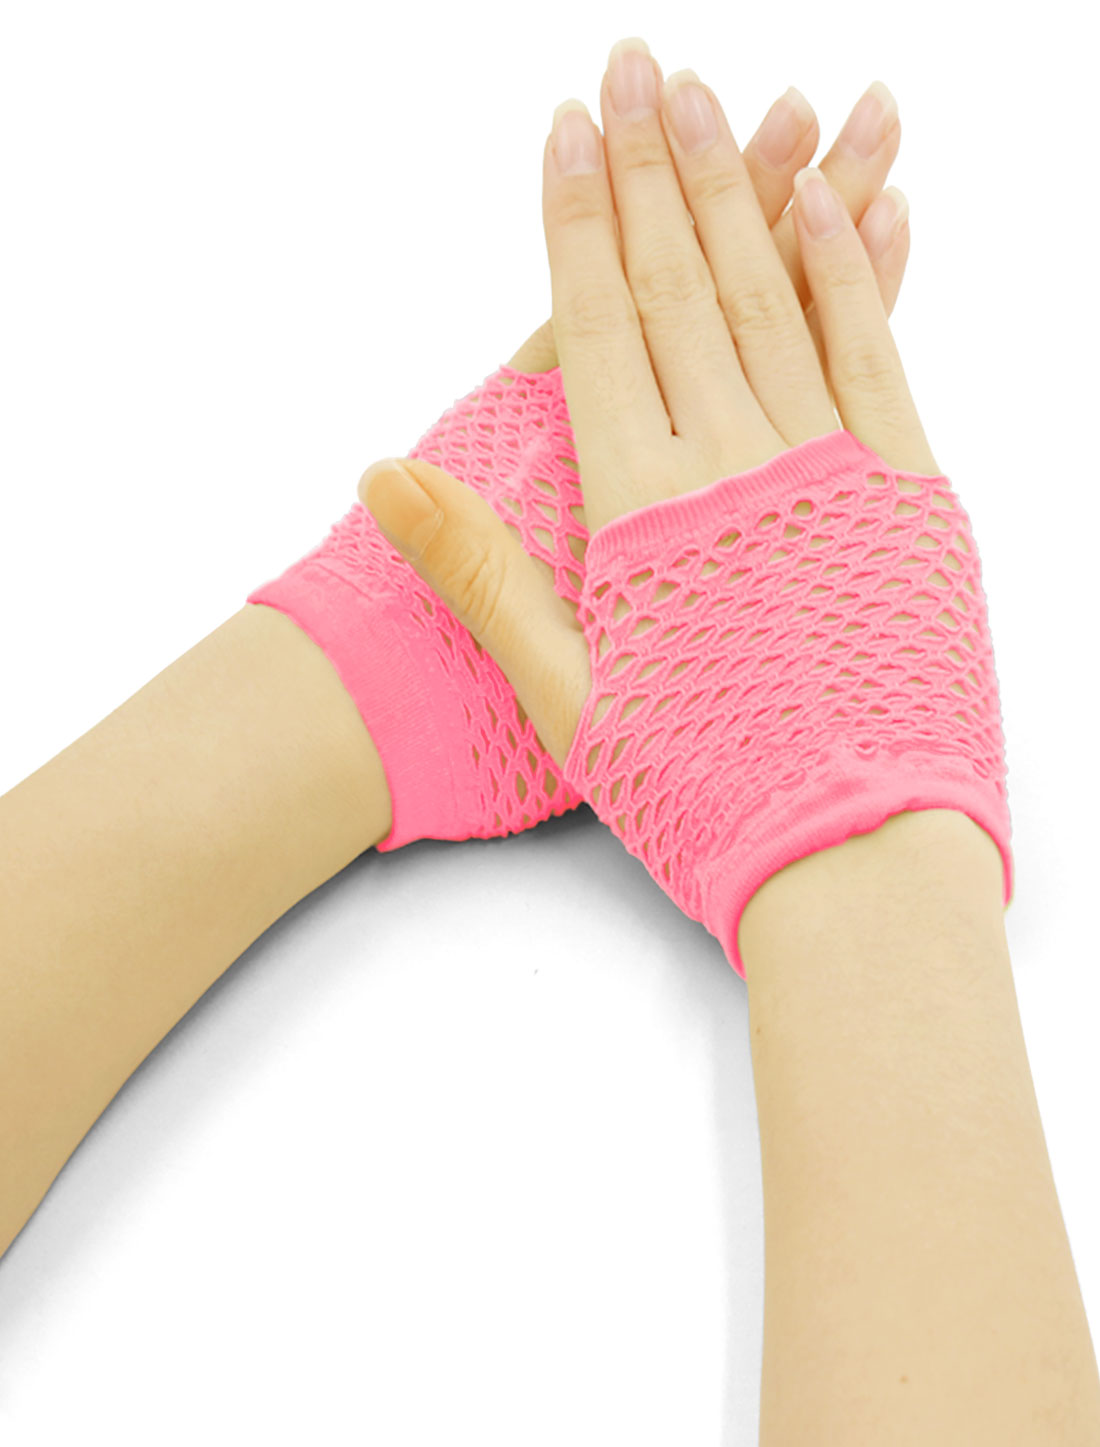 Women Wrist Length Stretchy Fingerless Fishnet Gloves 2 Pairs Pink